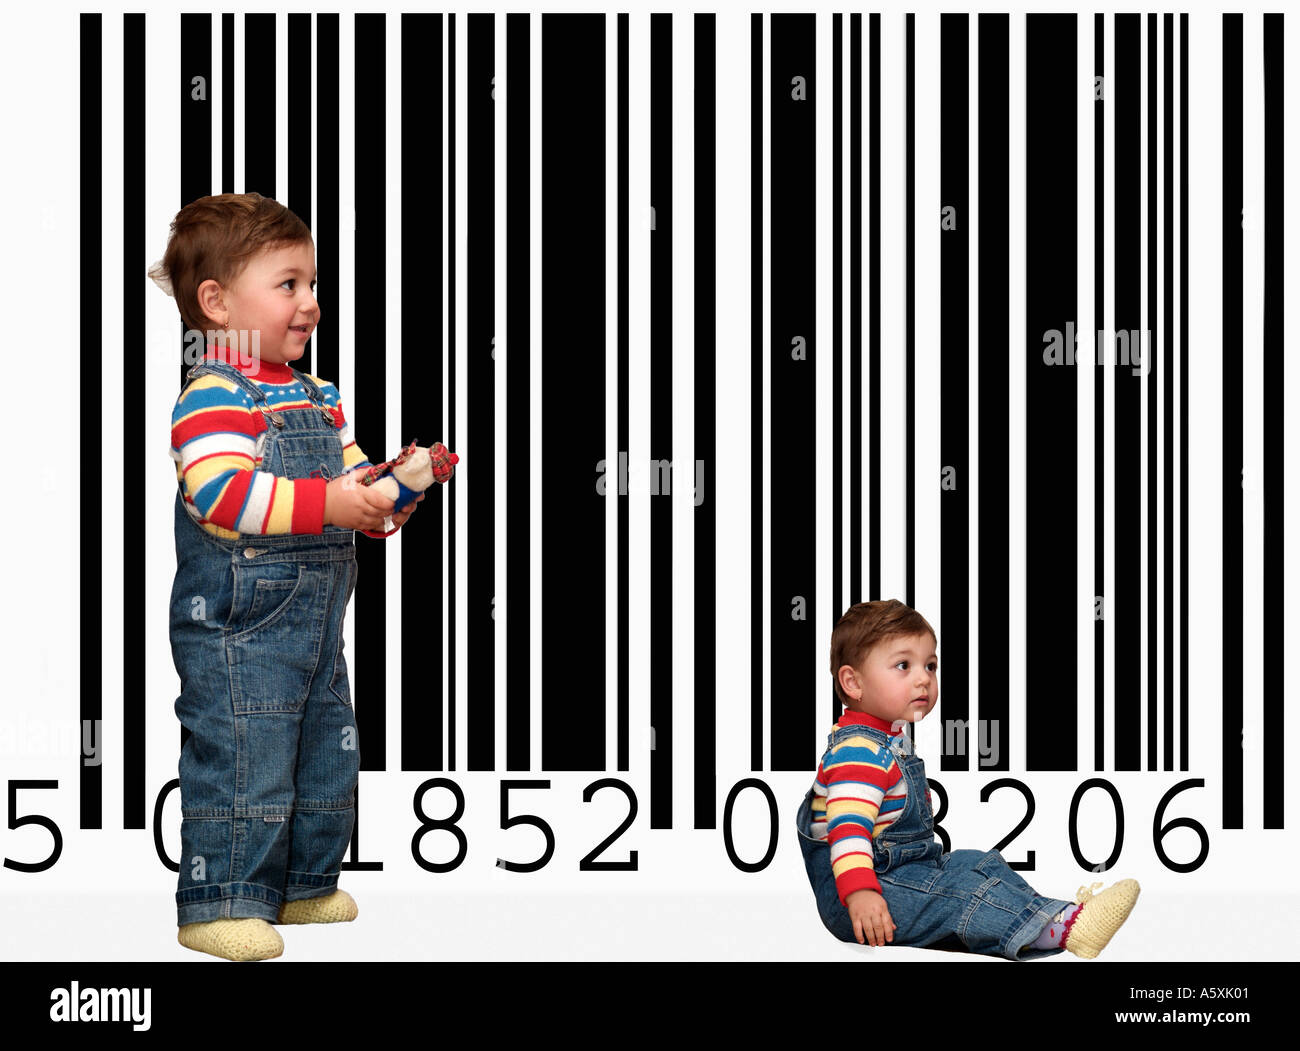 Genetic Engineering Concept with Identical Children in Front of a Barcode - Stock Image